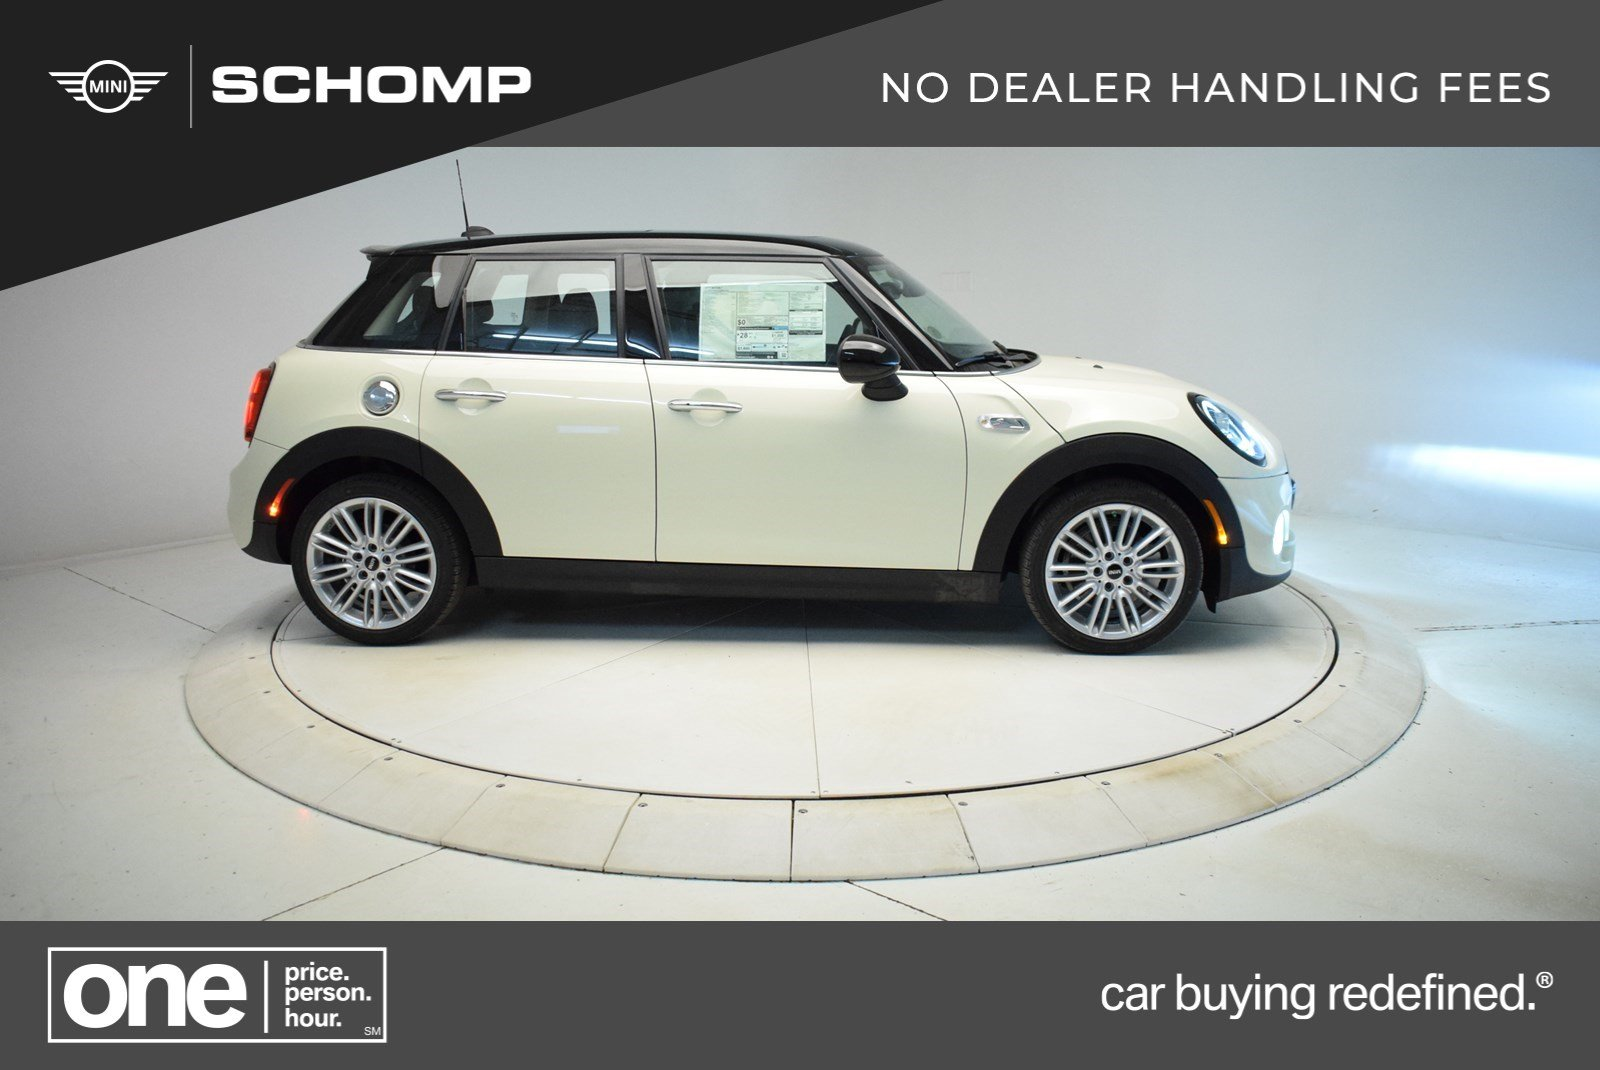 New 2019 MINI Hardtop 4 Door Cooper S Hardtop 4 Door